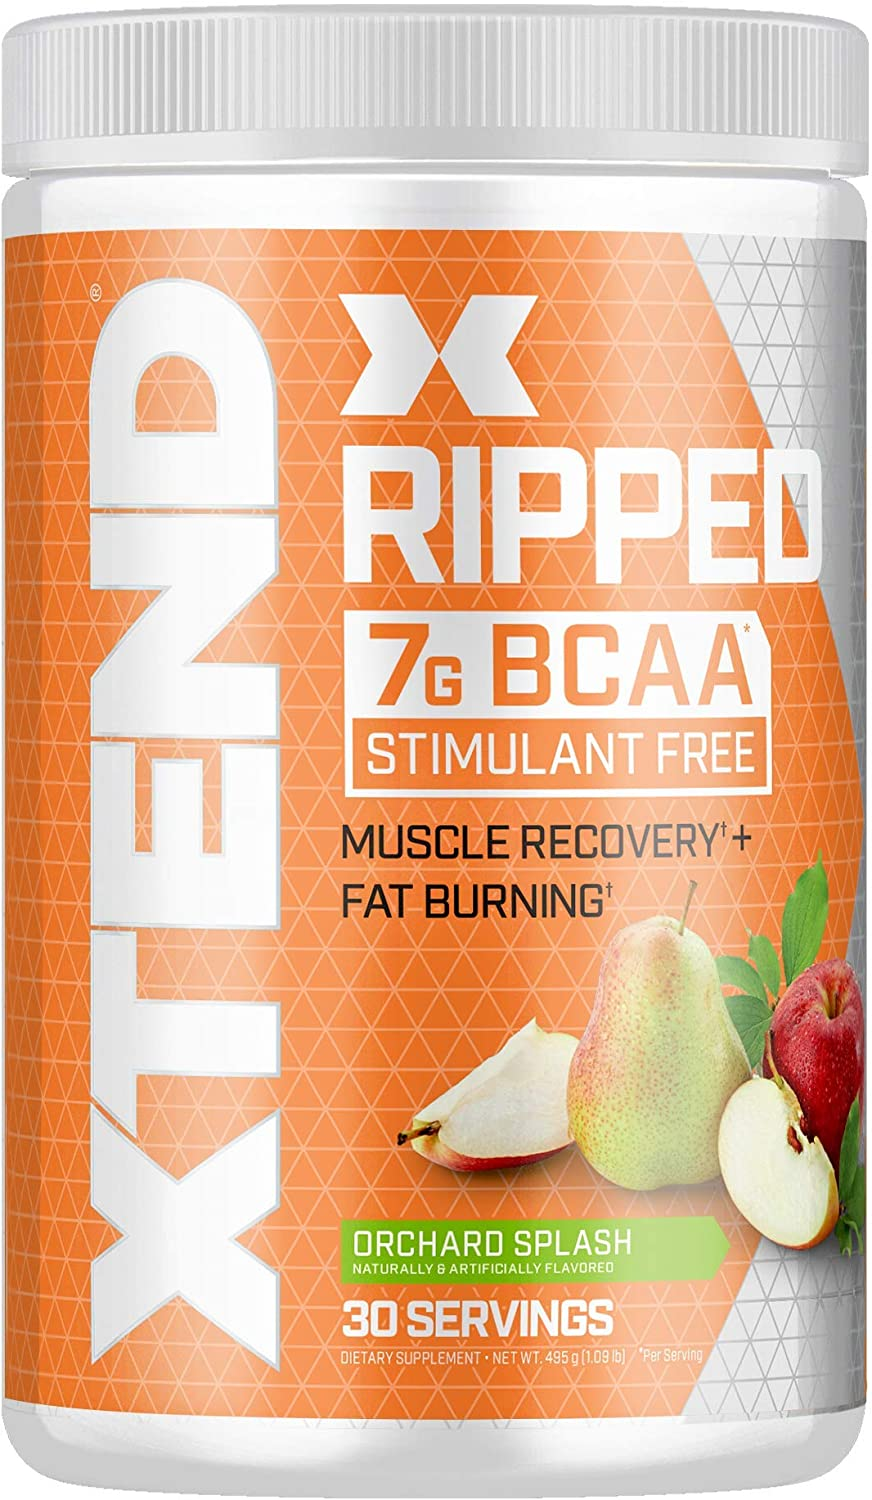 Xtend Ripped Bcaa Powder Orchard Splash Cutting Formula Sugar Free Post Workout Muscle Recovery Drink with Amino Acids 7g bcaas for Men Women 30 Servings